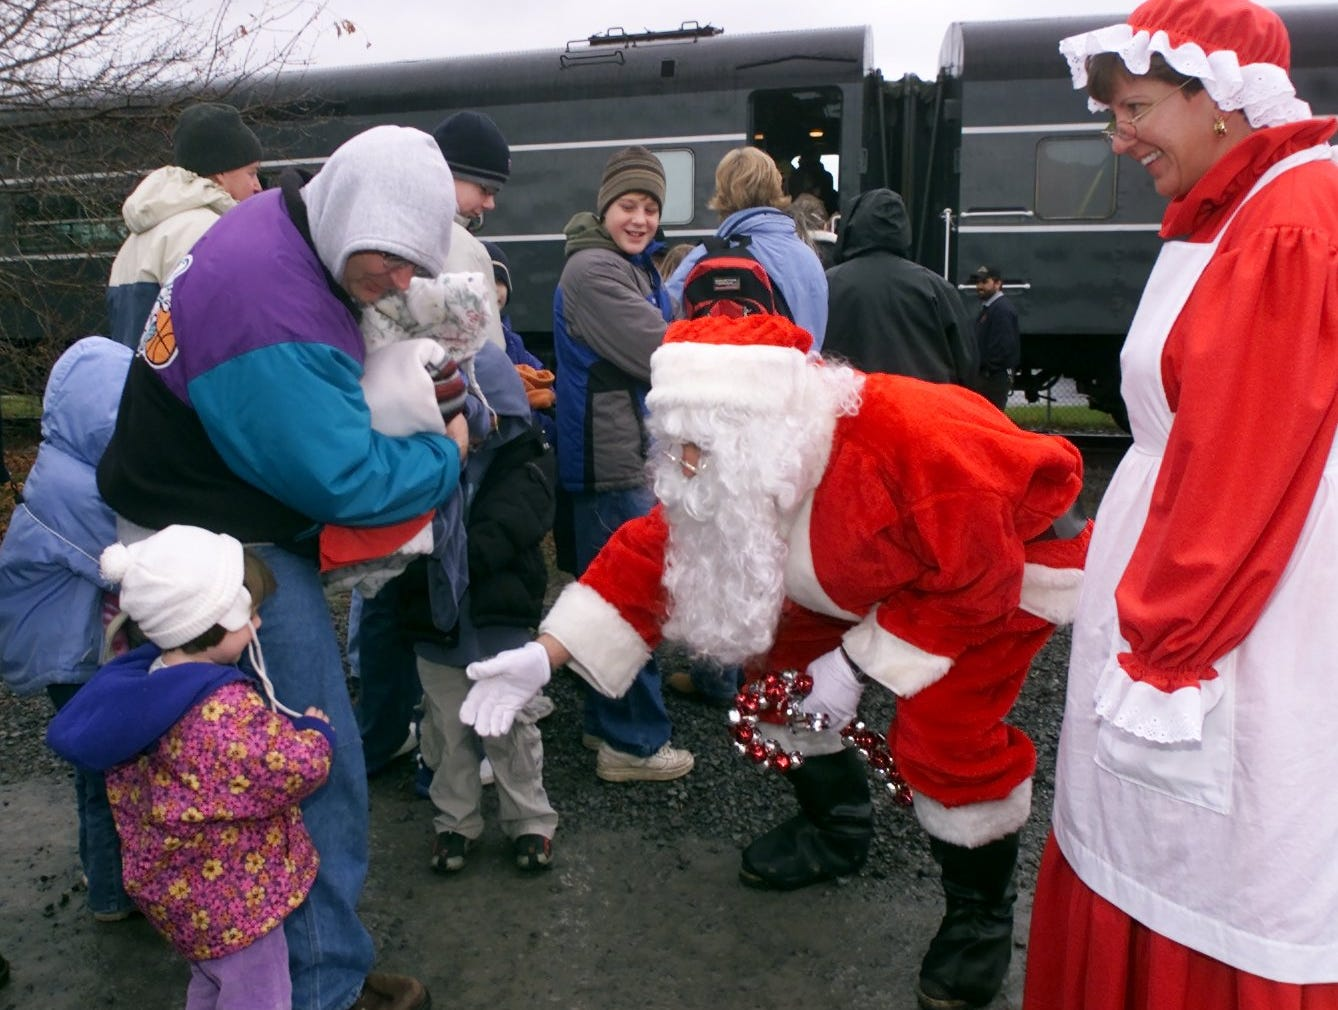 12/13/2004, 3C; 11/28/2005, 3C:   Santa and Mrs. Claus greet passengers Saturday bound for the Finger Lakes Scenic Railway's Santa Train in Watkins Glen. The railway offered three holiday rides Saturday as part of a fund-raiser for the American Stroke Association.